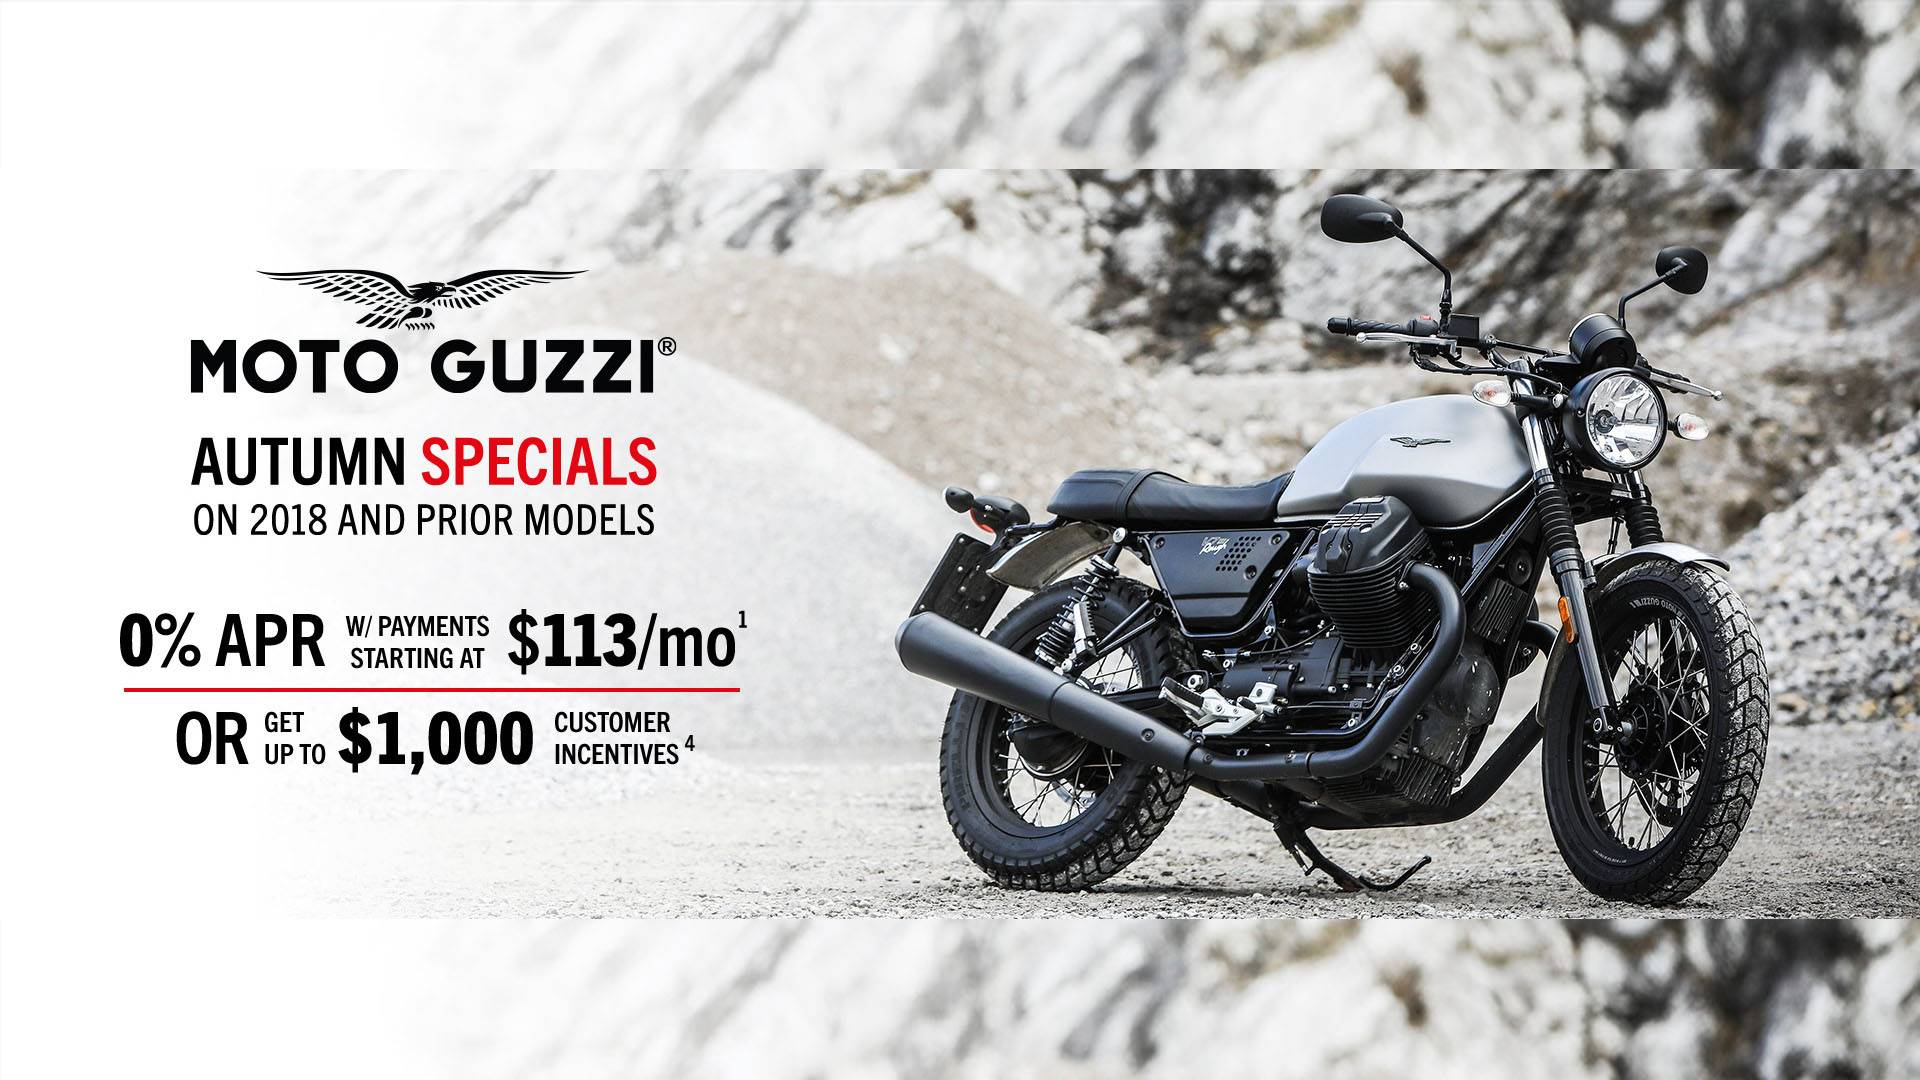 Moto Guzzi - Autumn Specials - 2018 and Prior Models